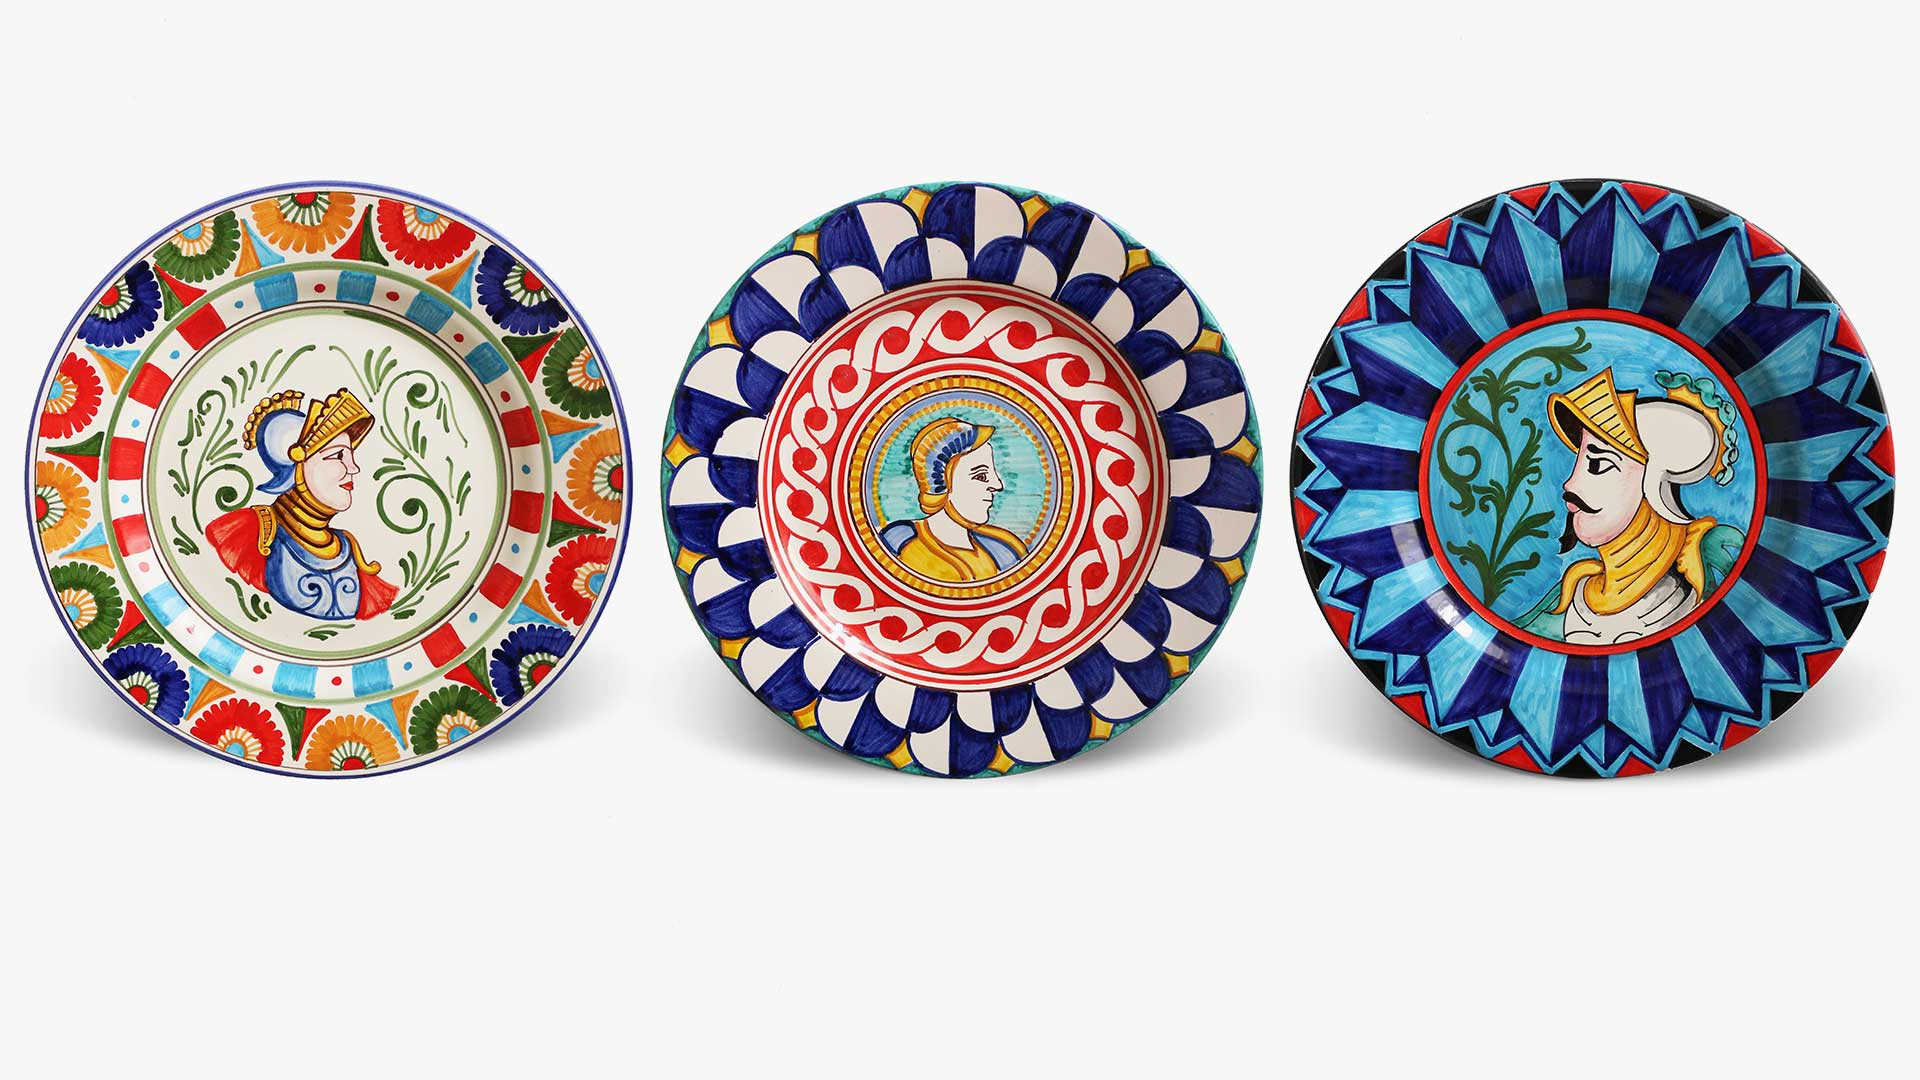 decorated ceramic plates-Paladini collection